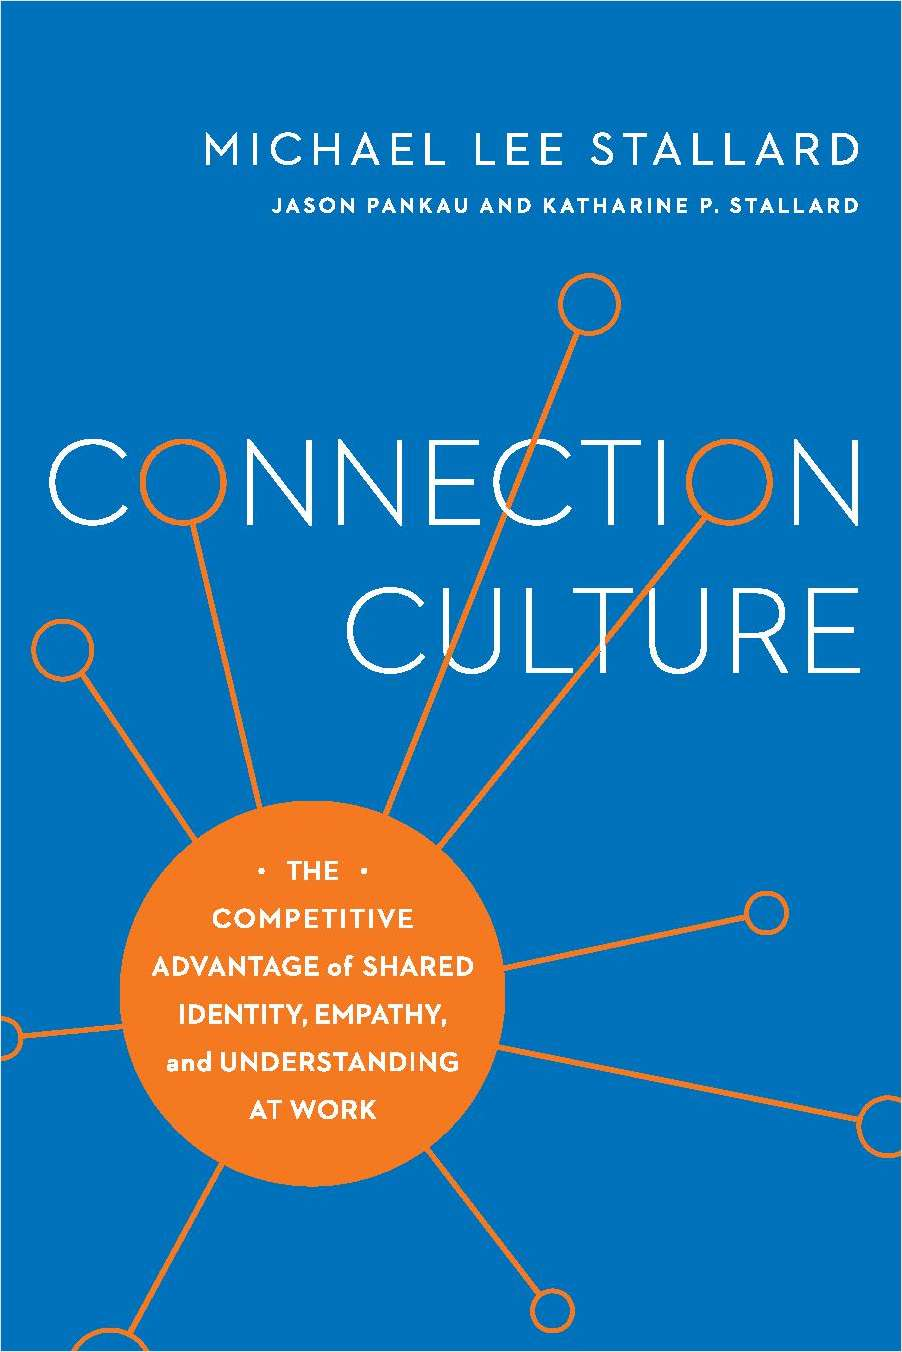 Connection Culture: The Competitive Advantage of Shared Identity, Empathy, and Understanding at Work (An Excerpt)